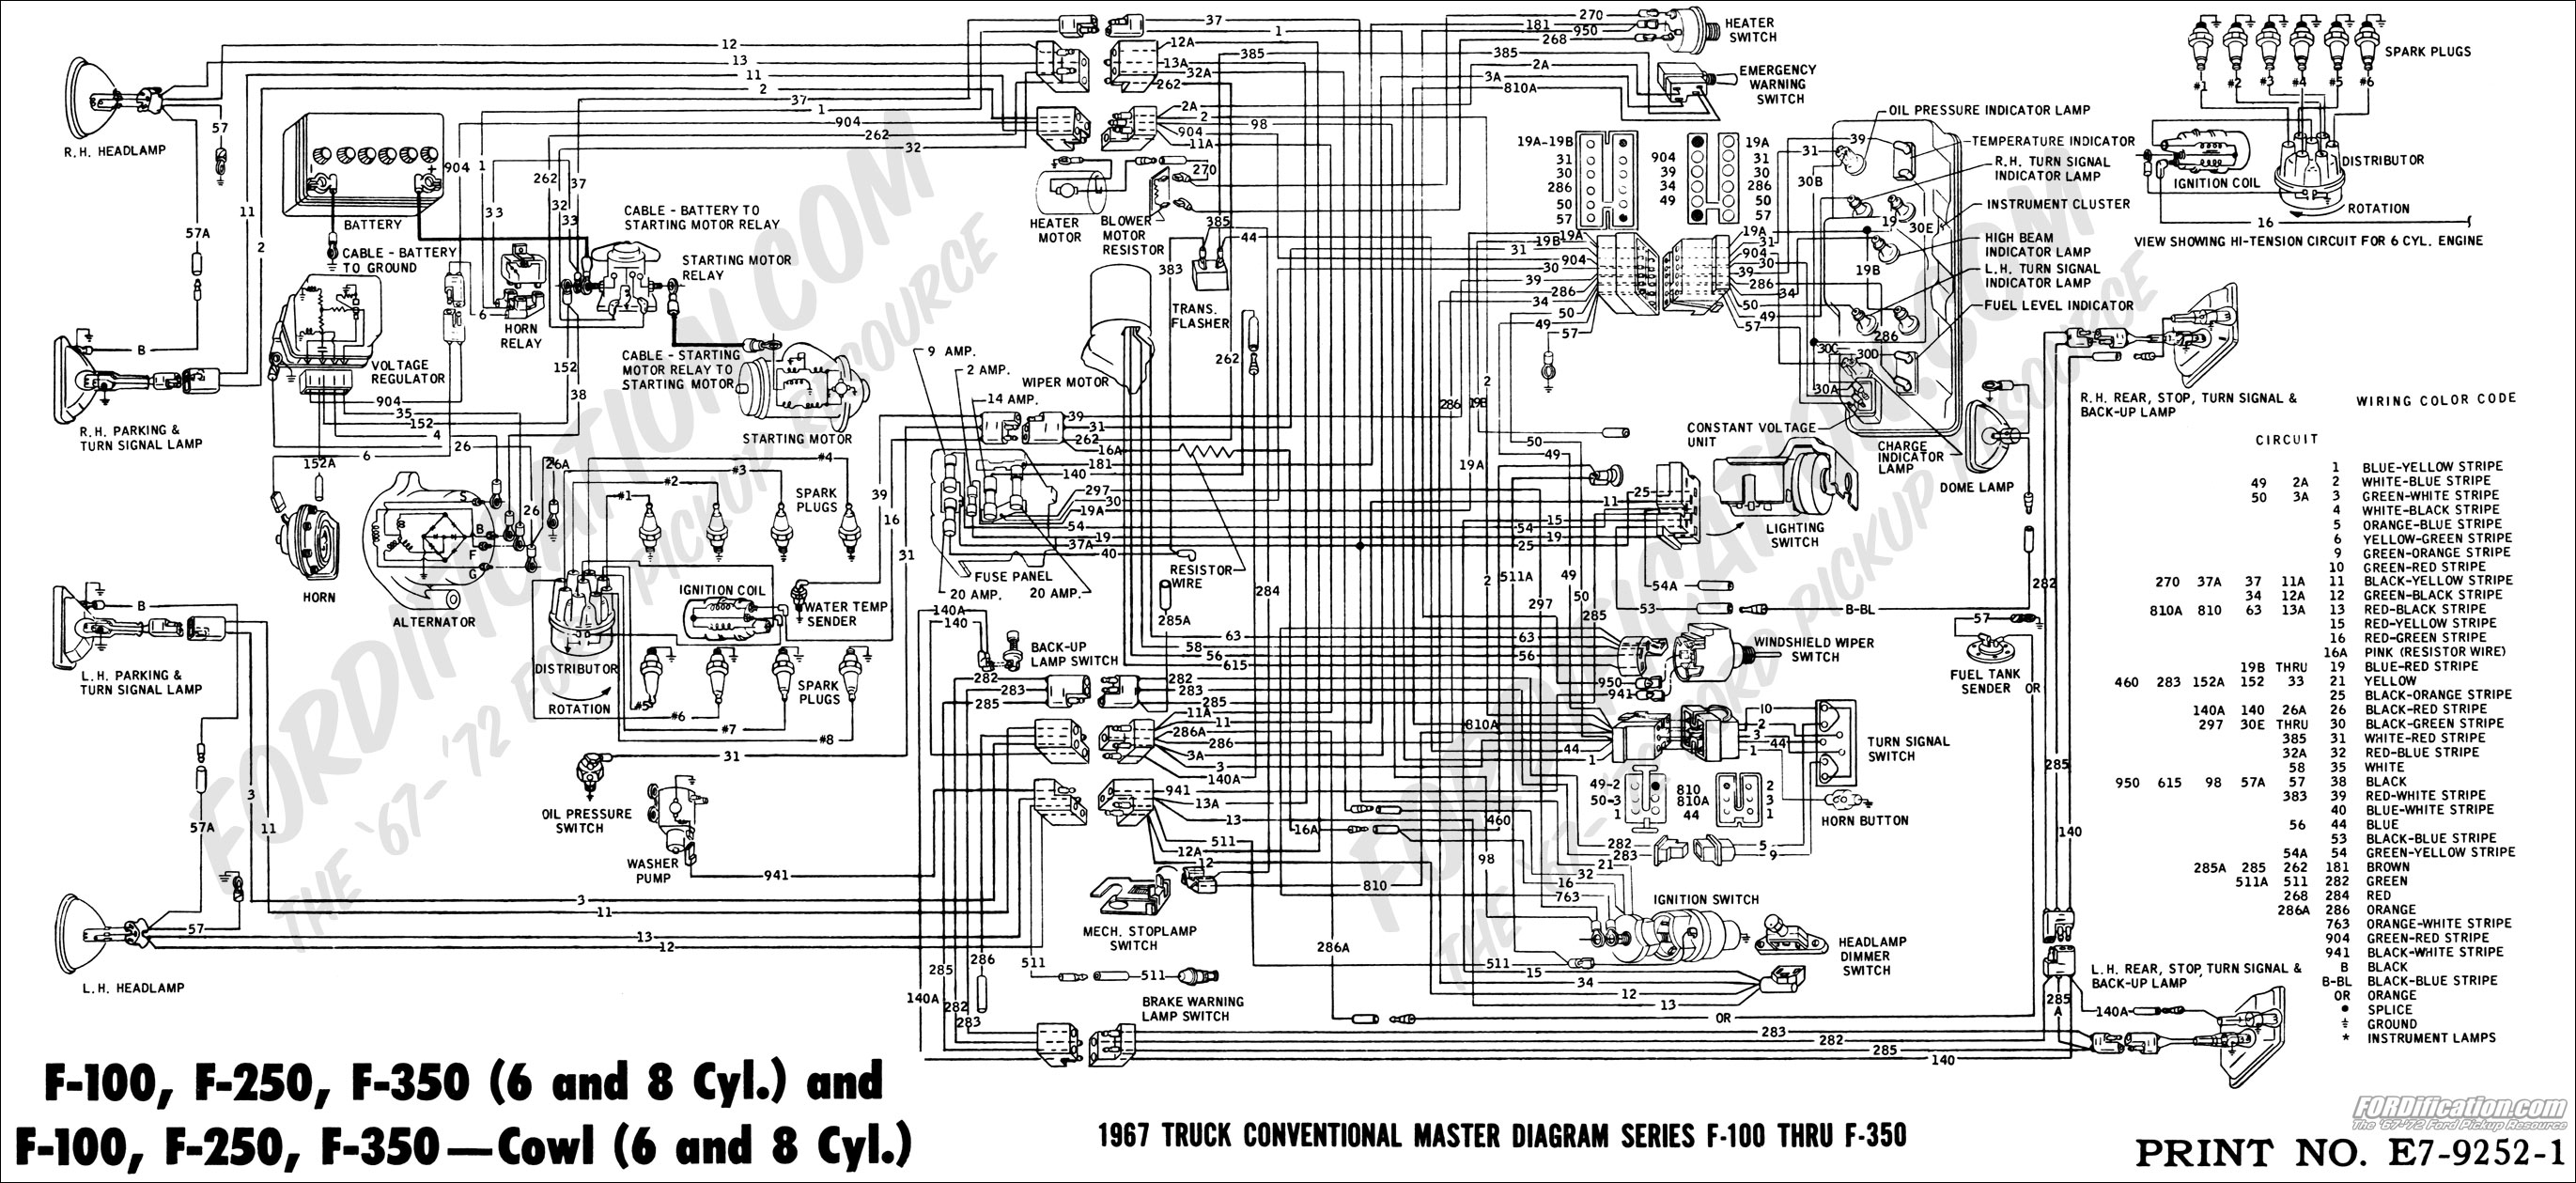 67masterdiagram free wiring diagrams \u2022 life quotes co Spa Light Wiring Diagram at crackthecode.co